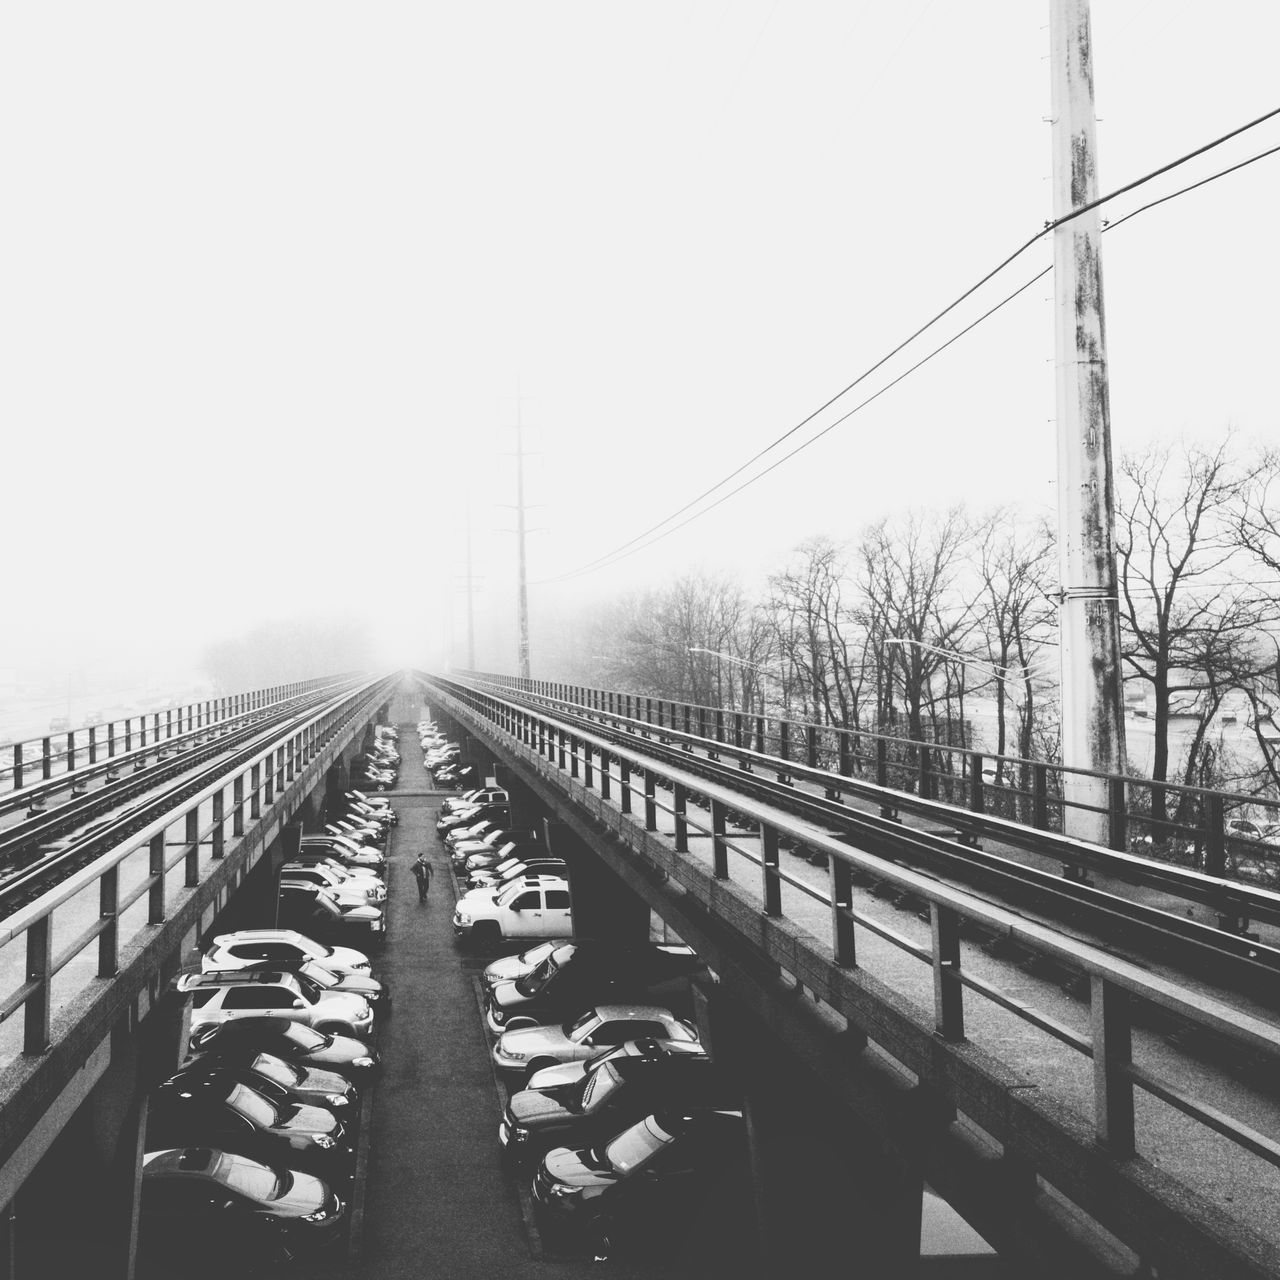 Foggy commute Connection Transportation Outdoors Clear Sky Sky Cable Day Bridge - Man Made Structure No People Electricity Pylon Nature Train Tracks Leading Lines Vanishing Point New York Commuters Commuter Commuting Foggy Fog Blackandwhite Blackandwhite Photography Welcome To Black